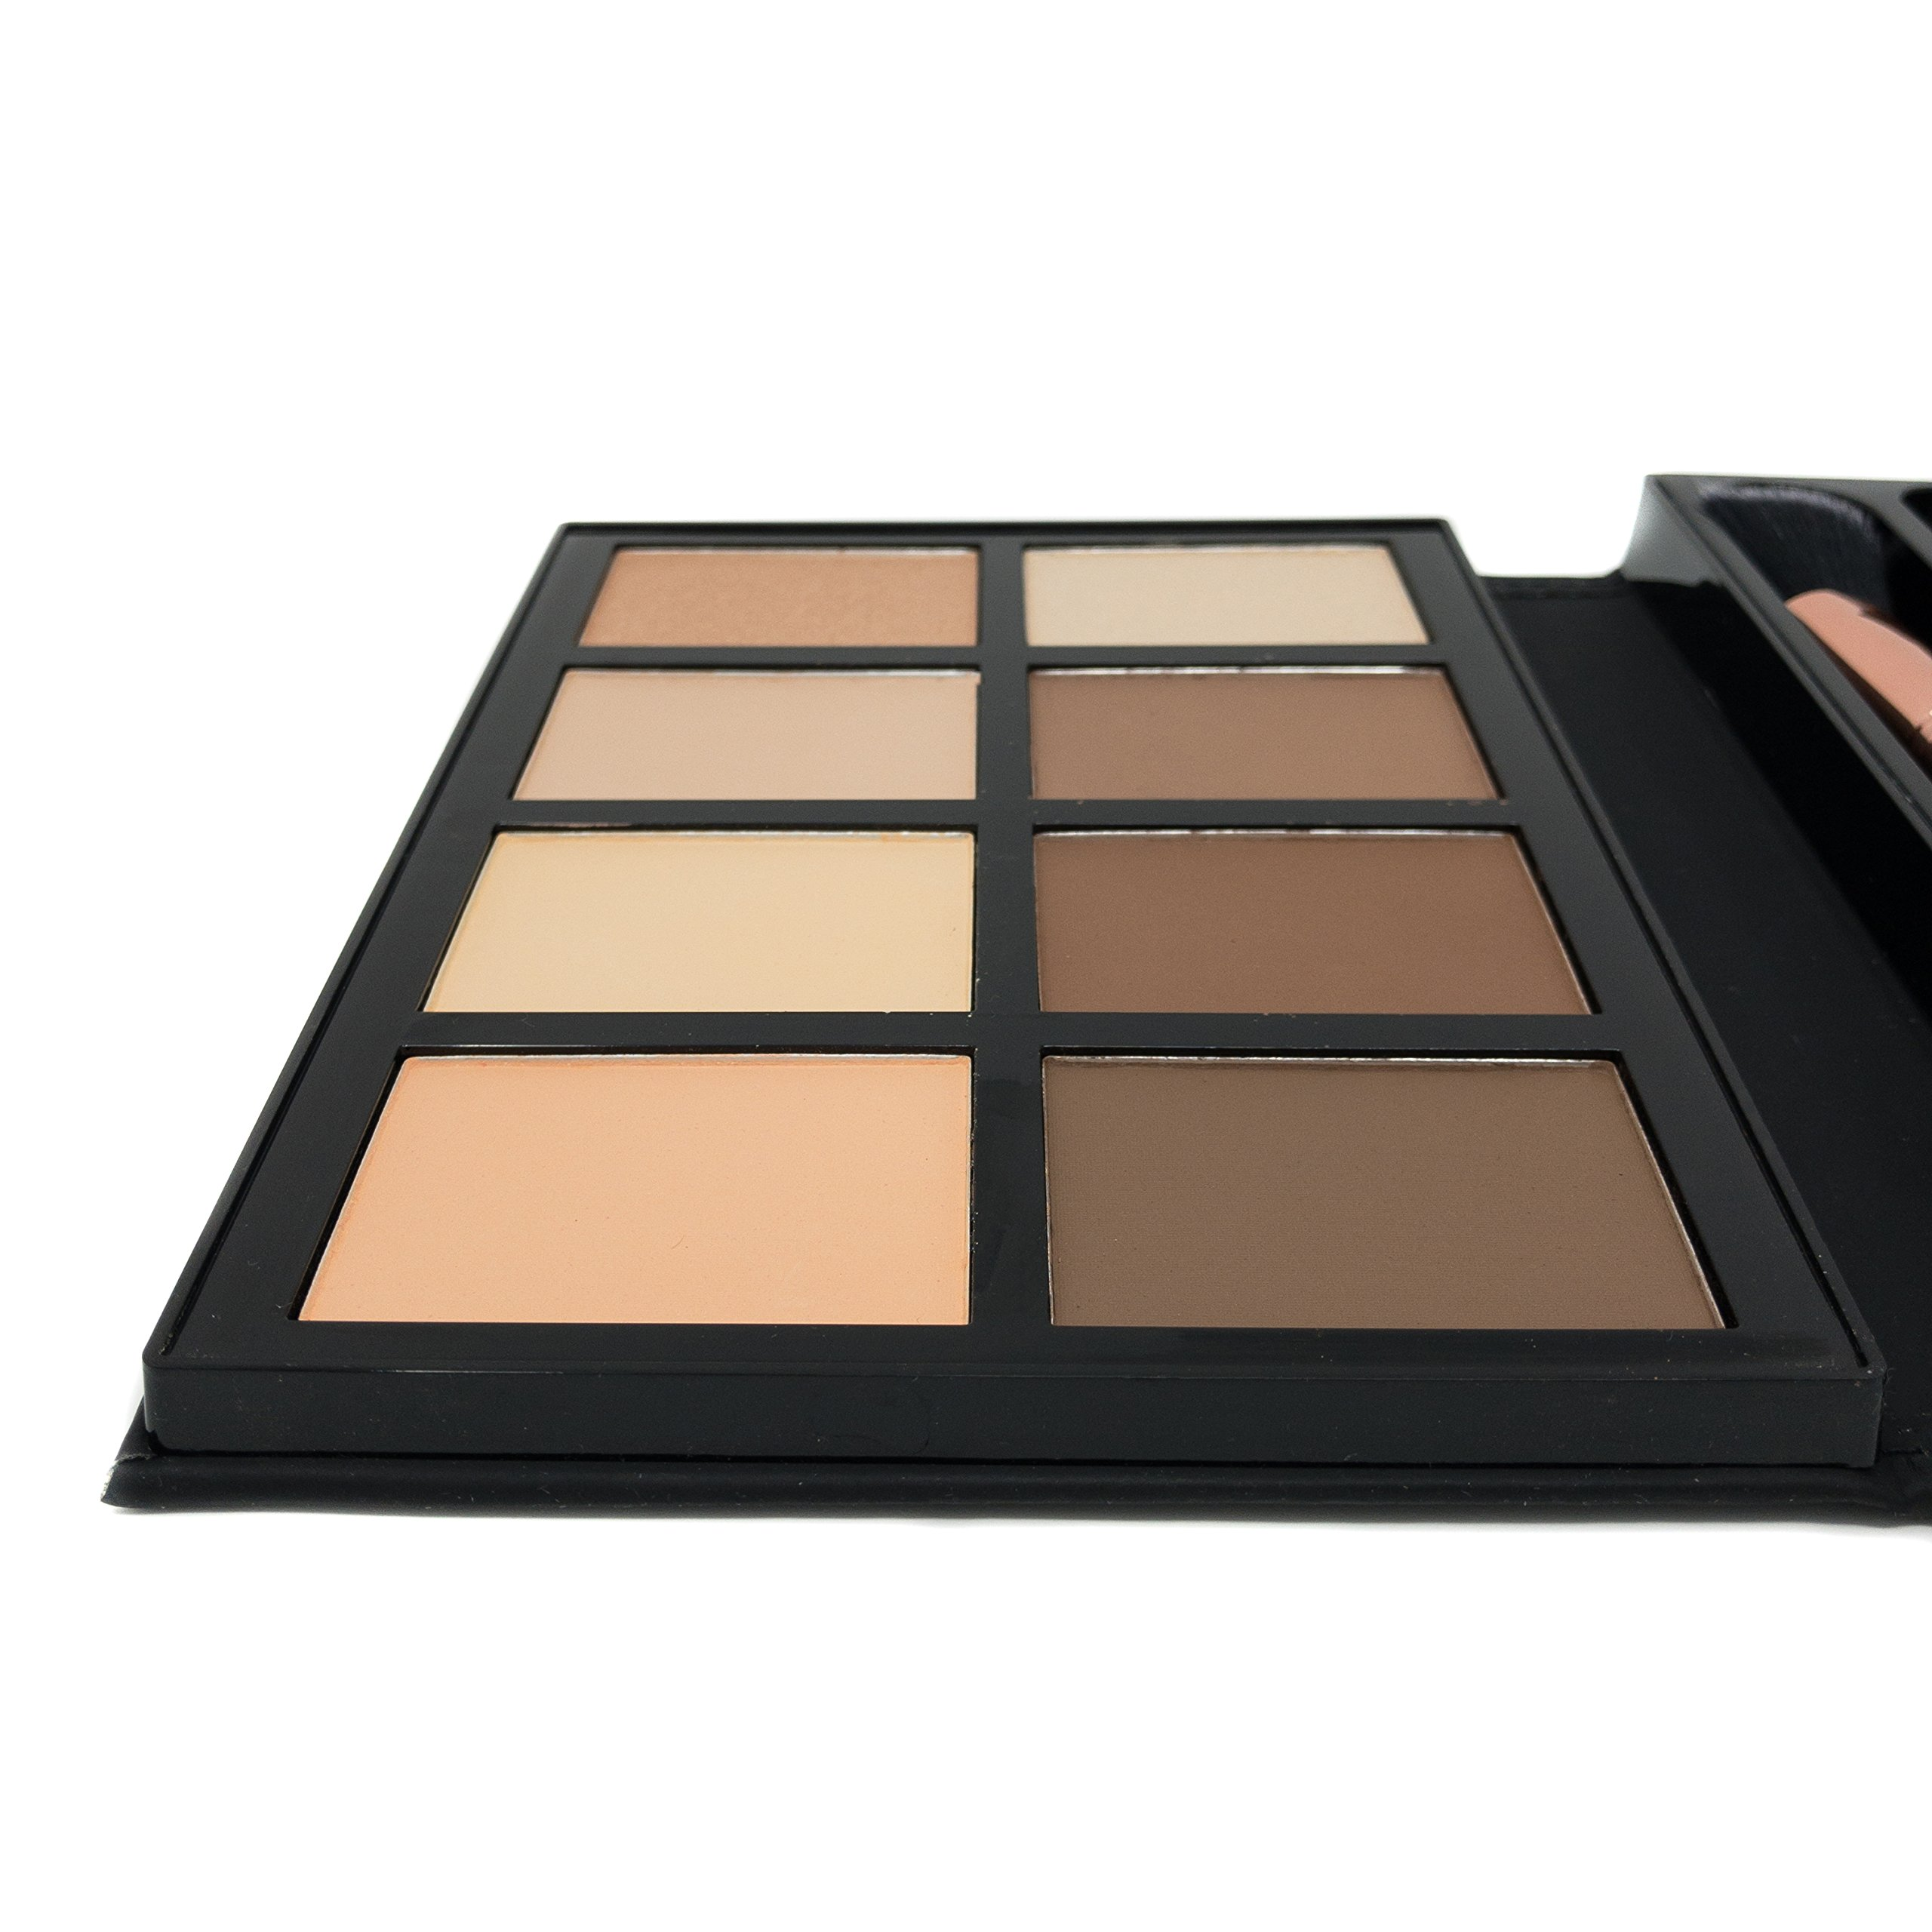 Profusion Cosmetics - Contour - Professional 8 Color Palette - Face Powder Highlighter Bronzer Makeup Kit Brushes Included - Champagne Highlight Nutmeg Ivory Peach Pale Gala Moonstone Java Ebony by Profusion Cosmetics (Image #6)